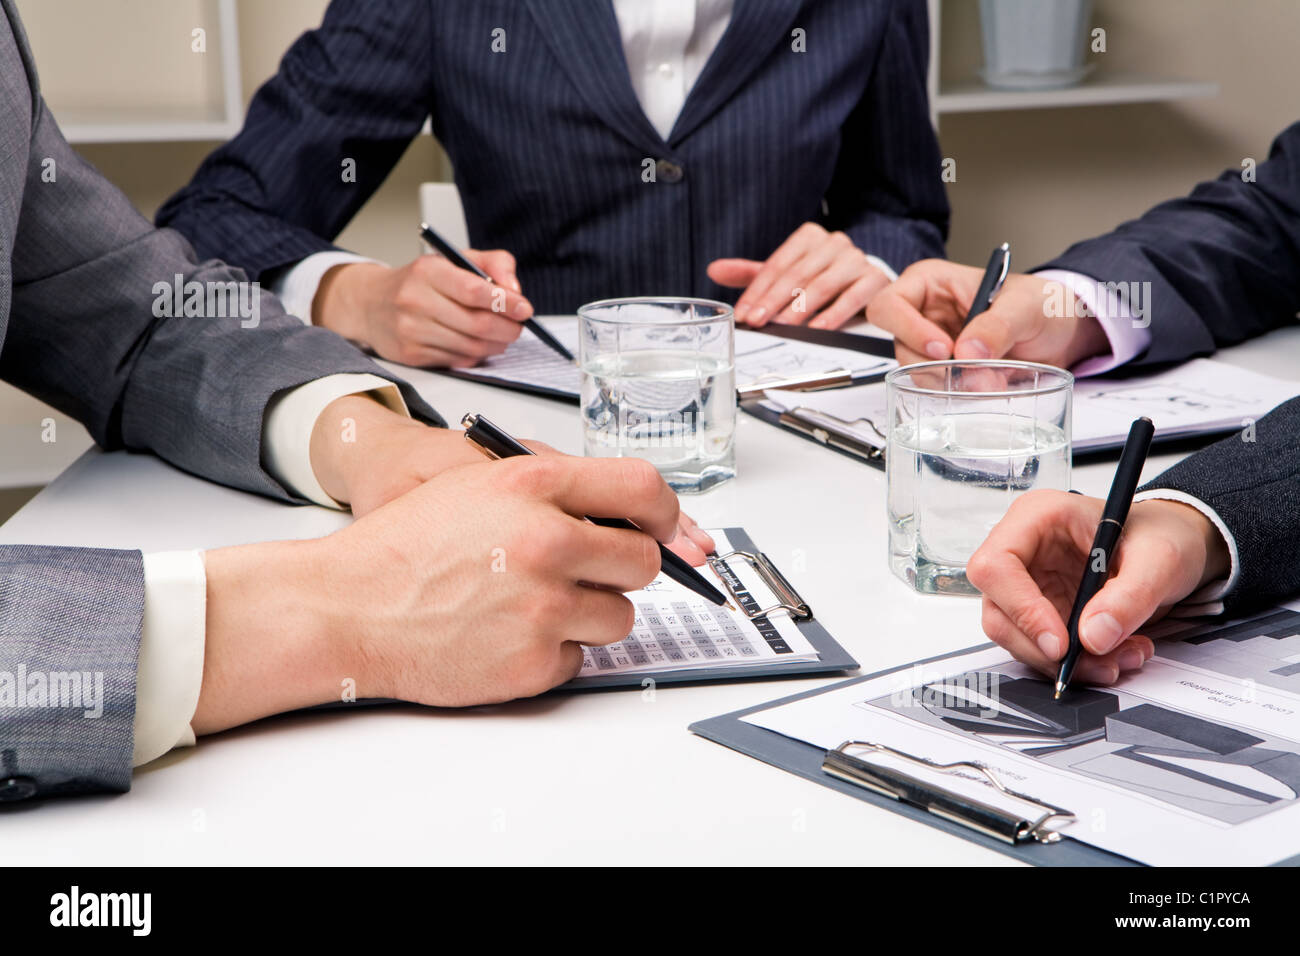 Close-up of workteam reading documents at business meeting - Stock Image